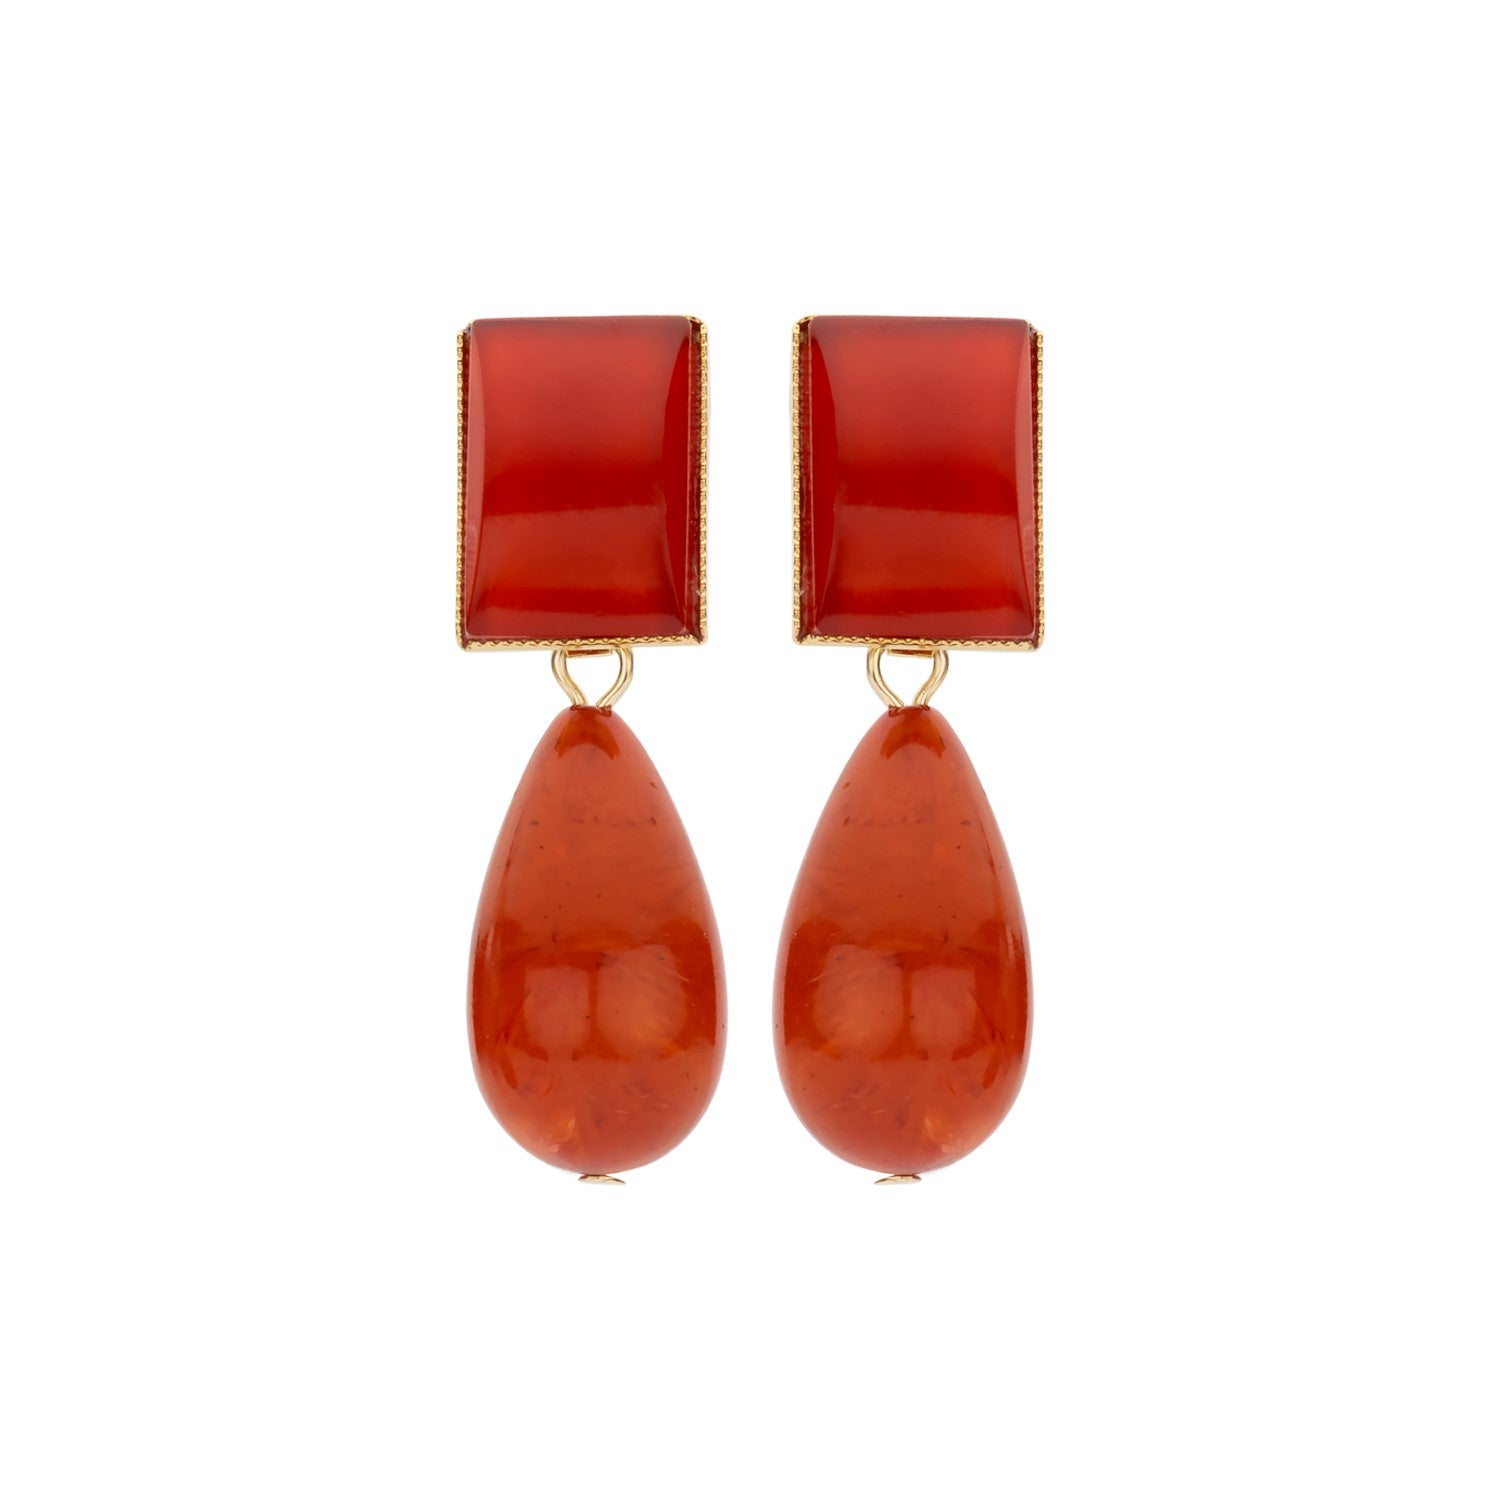 New Playa red terracota earrings - Souvenirs de Pomme